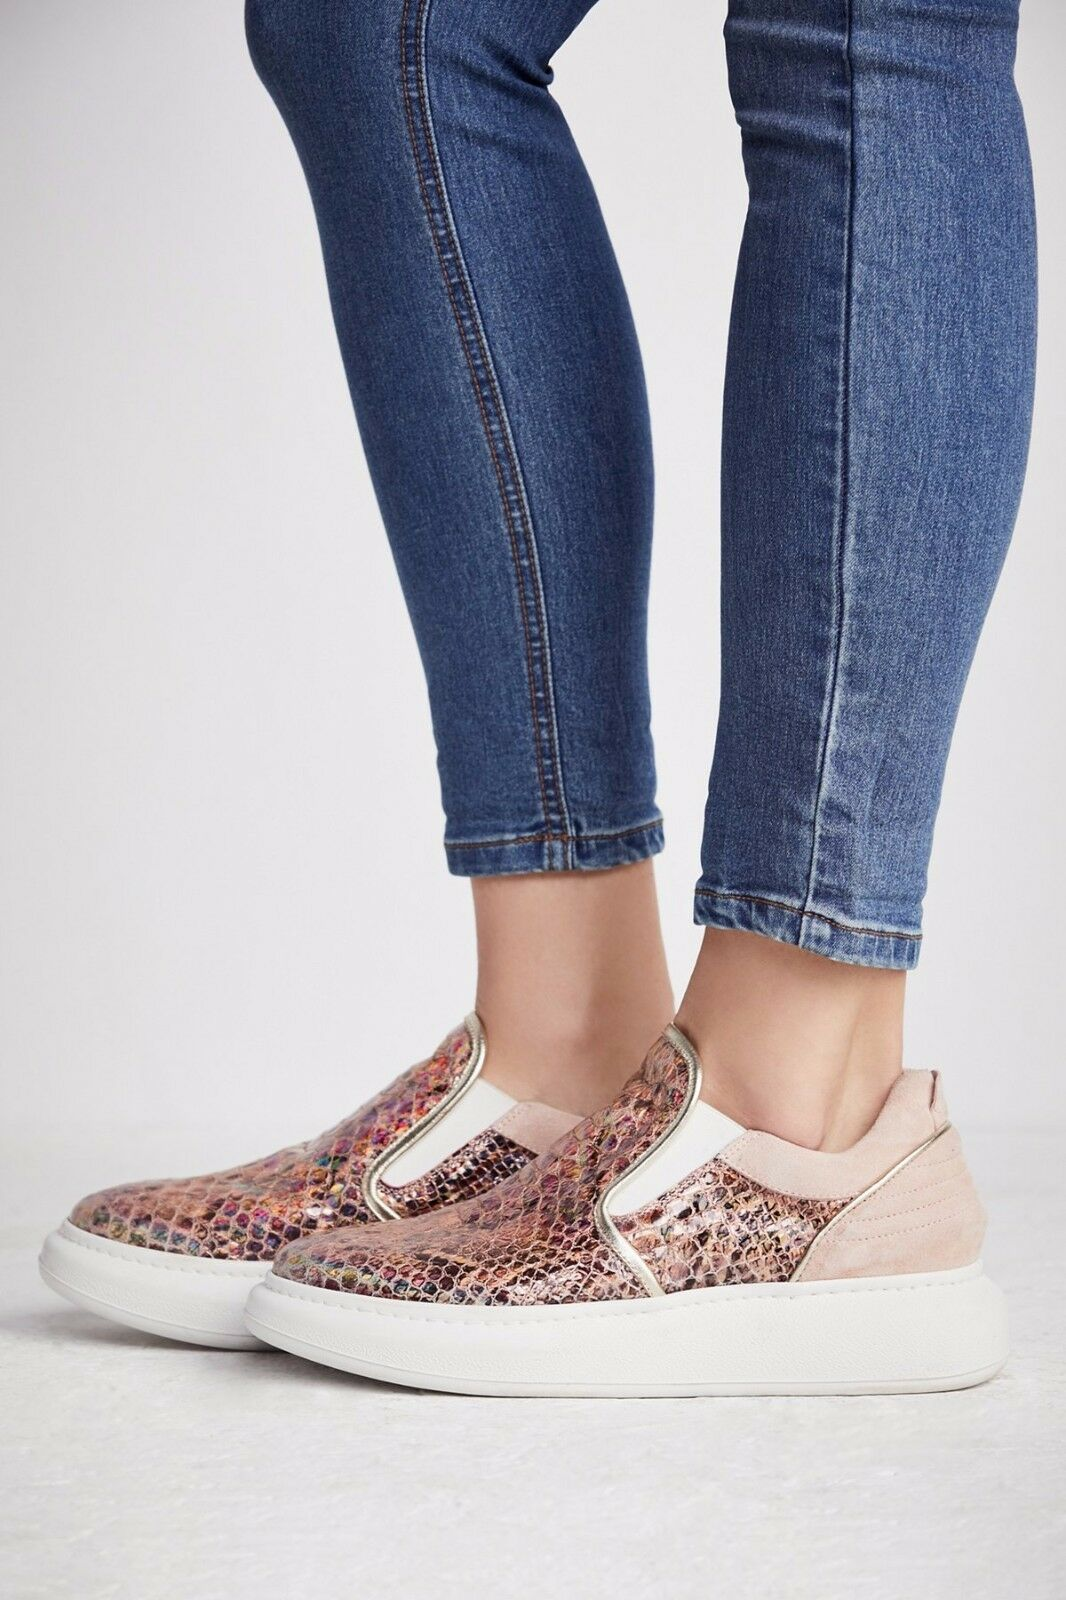 FREE PEOPLE SHOES NOVA METALLIC SNEAKER NEW 8  298 SNAKESKIN TEXTURE FP NIB